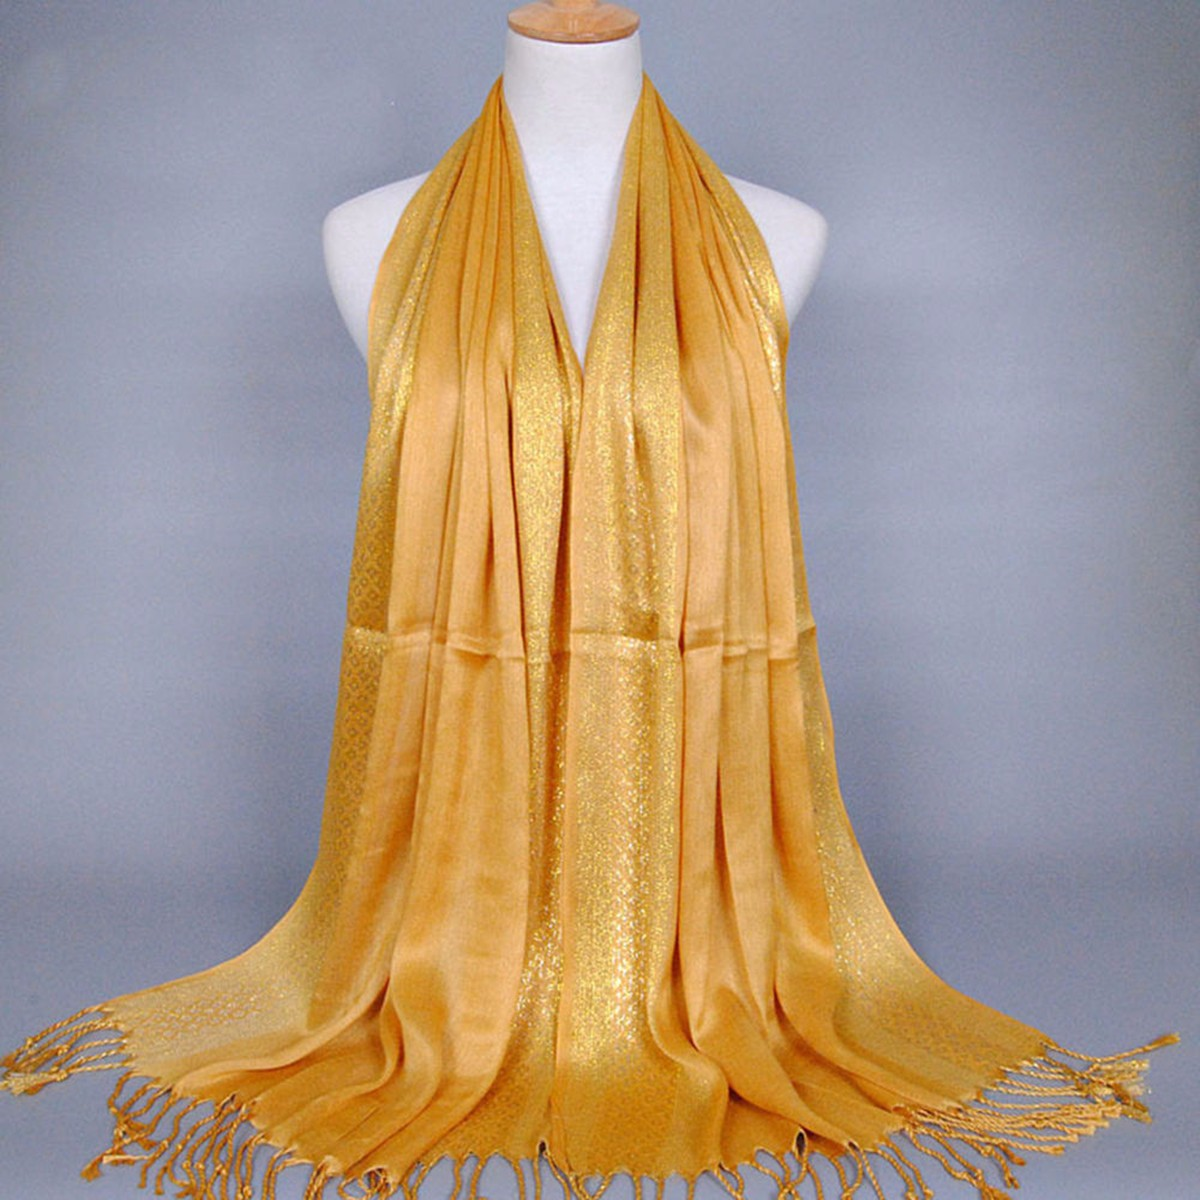 180*60CM Women Ladies Glitter Shine Cotton Blend Tassel Scarf Stole Shawl Wrap Shimmer Scarves